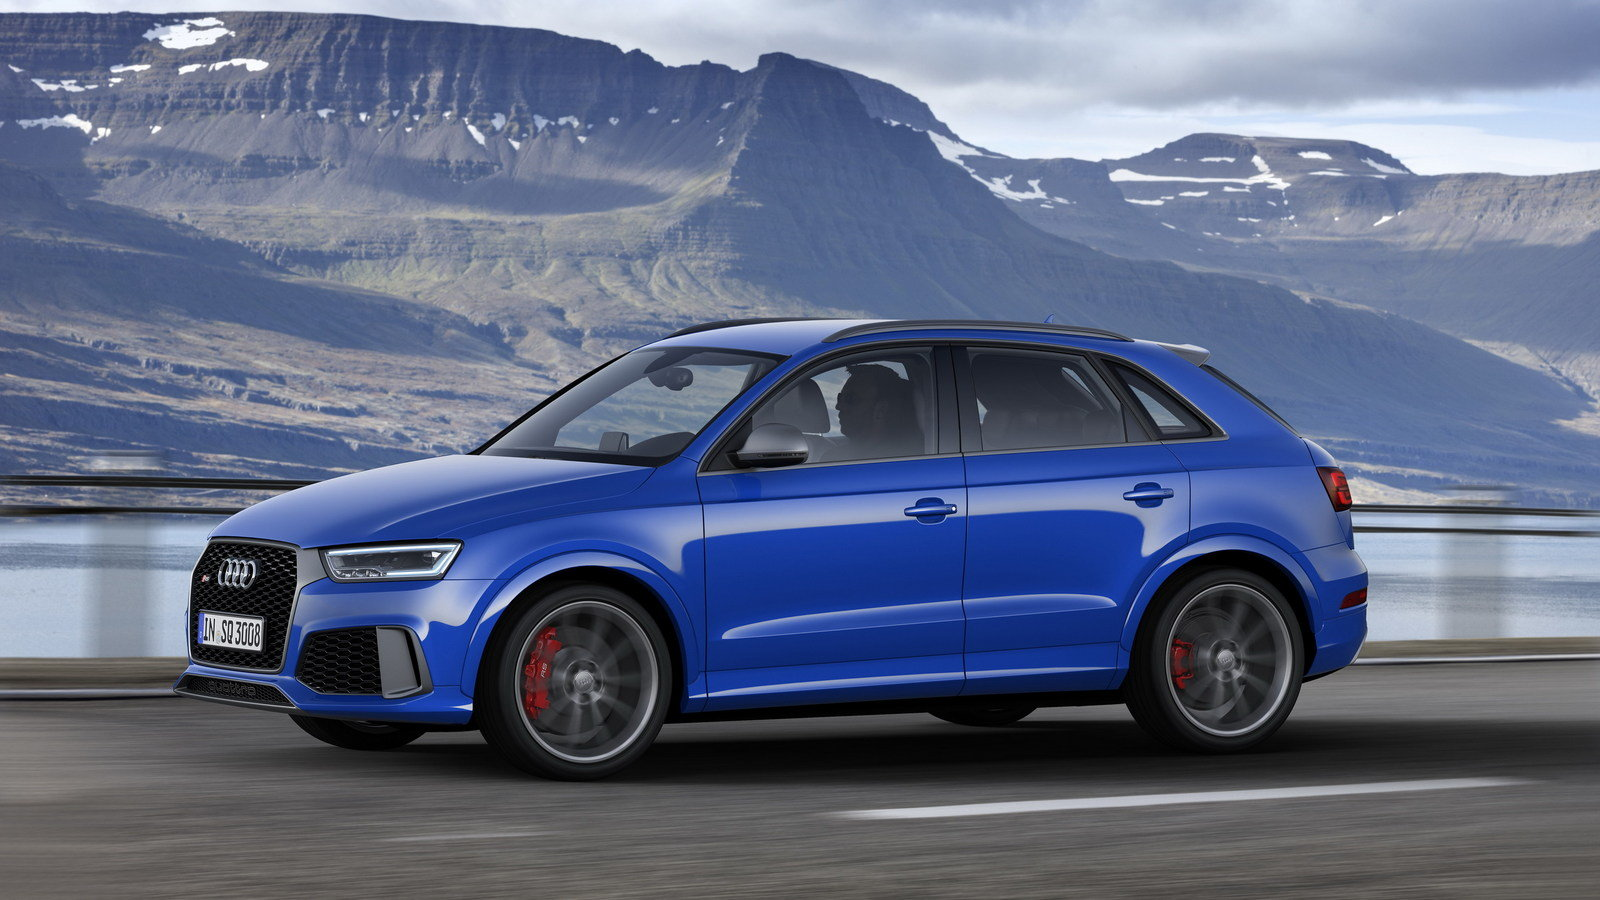 2017 audi rs q3 performance picture 664190 car review top speed. Black Bedroom Furniture Sets. Home Design Ideas